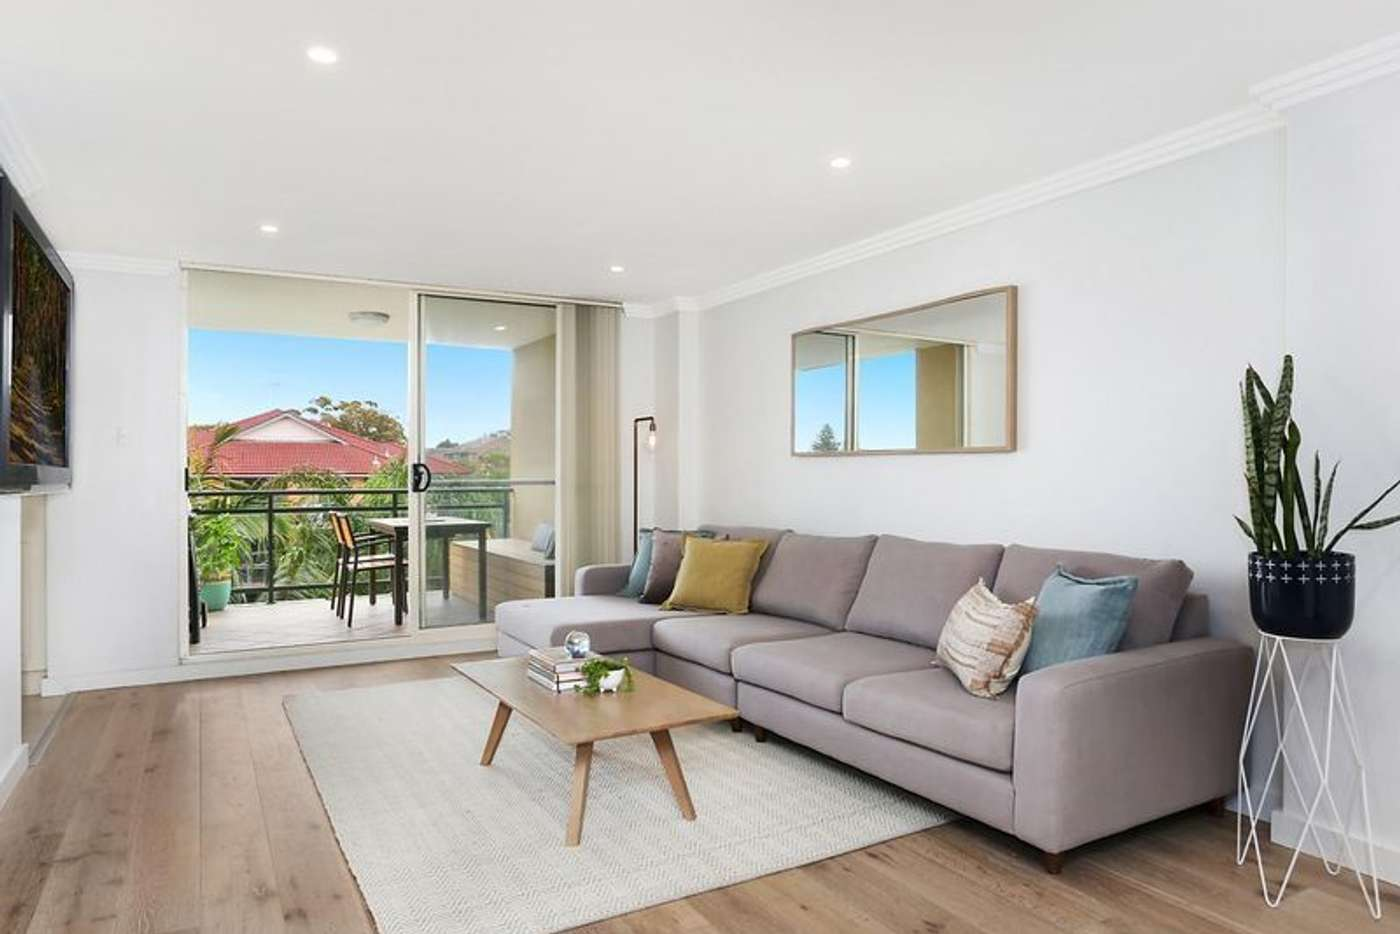 Main view of Homely apartment listing, 15/24 Parramatta Street, Cronulla NSW 2230